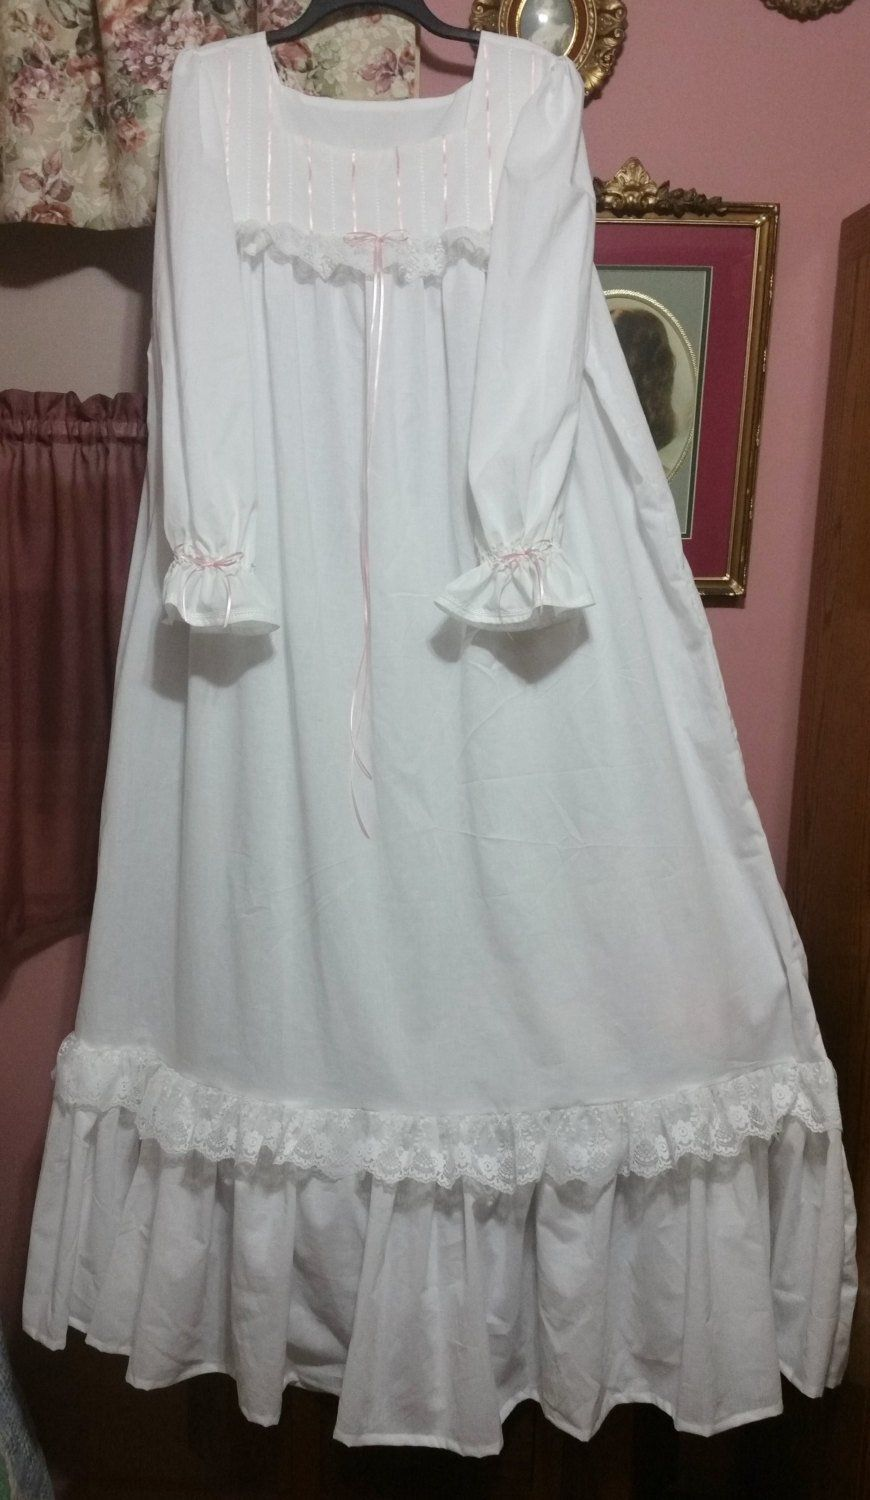 Victorian Nightgown White Cotton Floor Length Nightgown Etsy Night Gown Victorian Nightgown Night Dress For Women